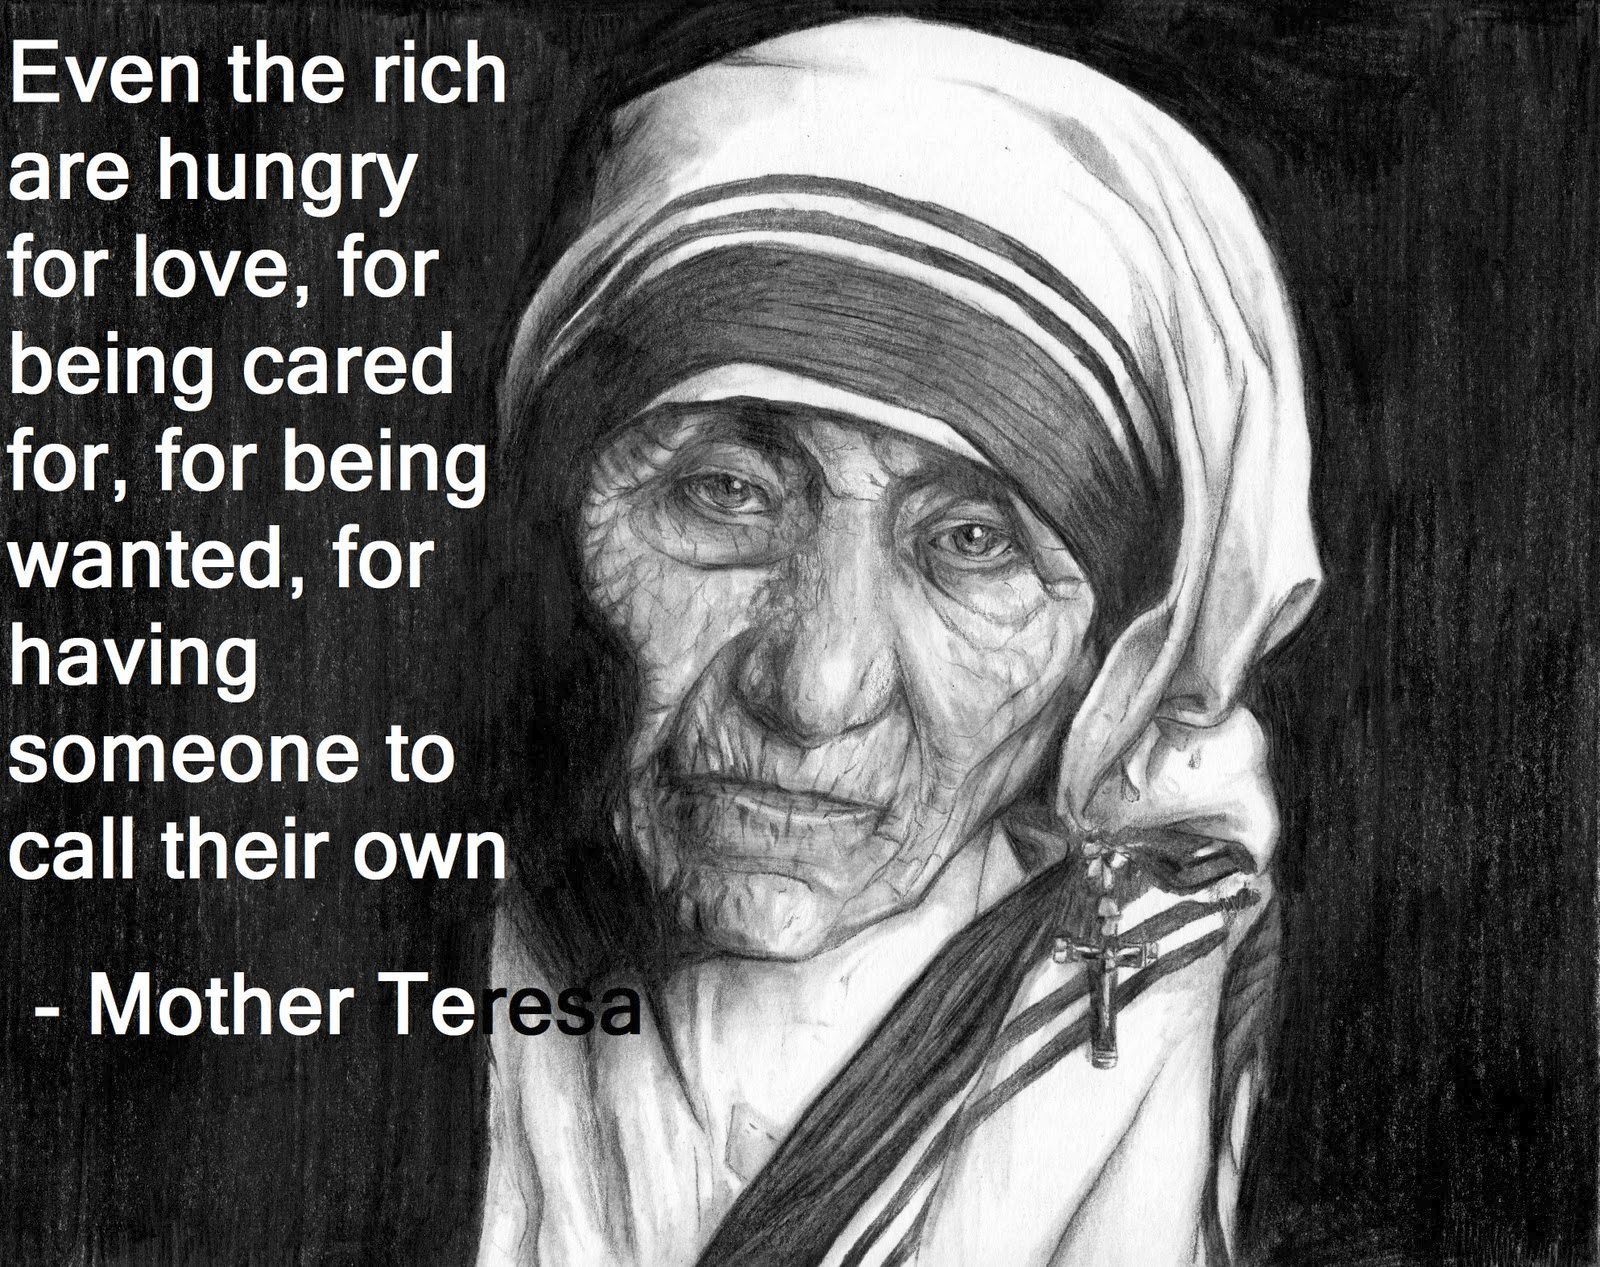 best images about mather teresa mother teresa 17 best images about mather teresa mother teresa peace and search